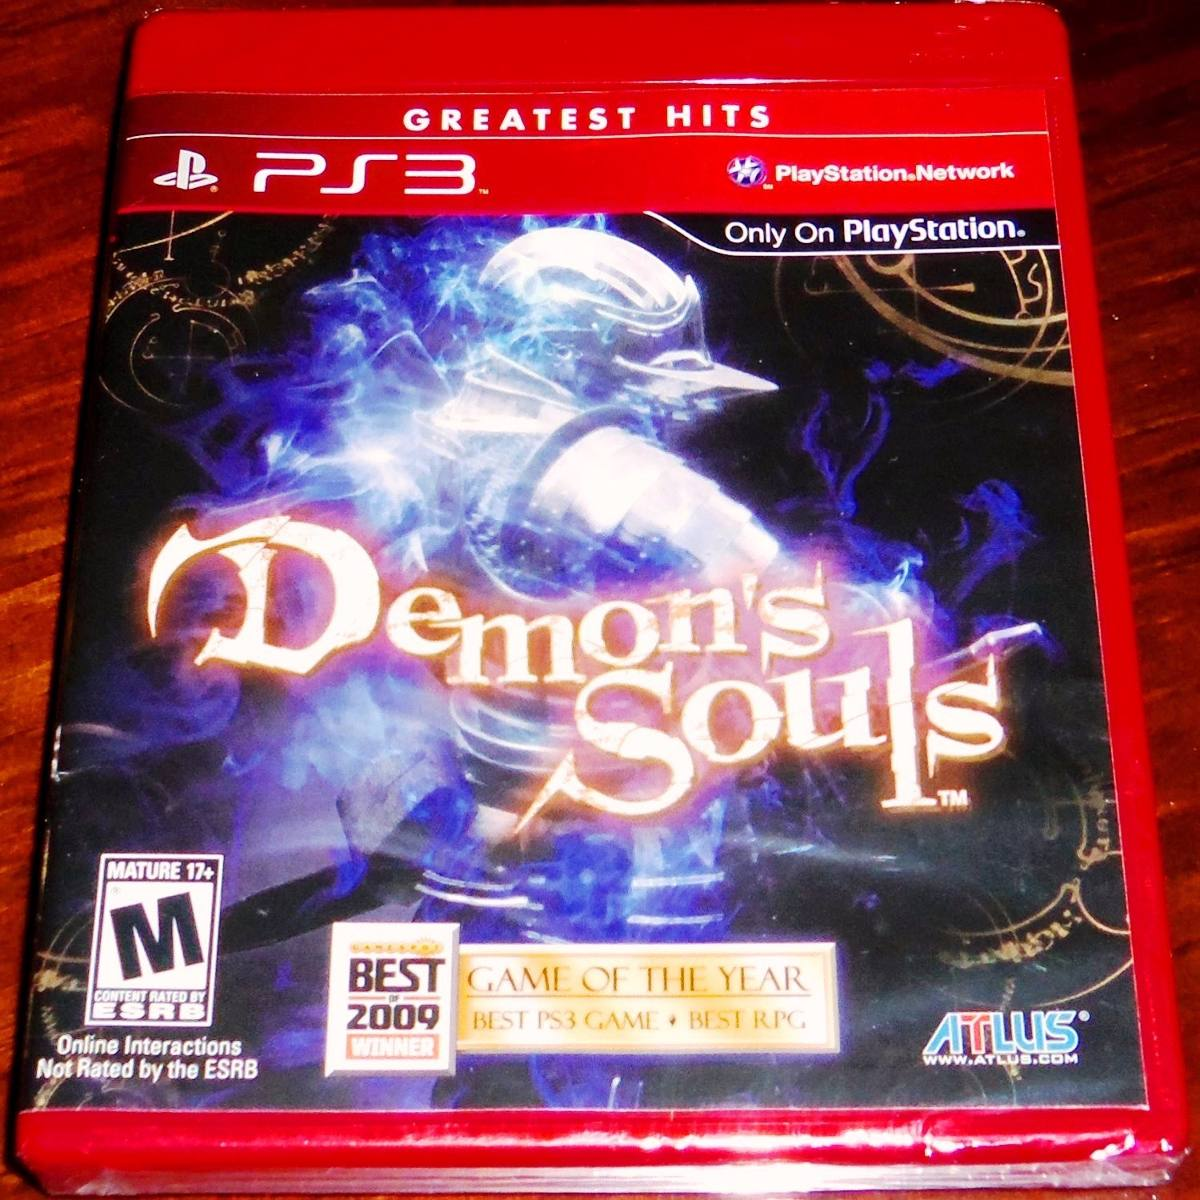 Lote 2 Vj Demon's Souls Y The Last Of Us Ps3 Nuevos Sellados